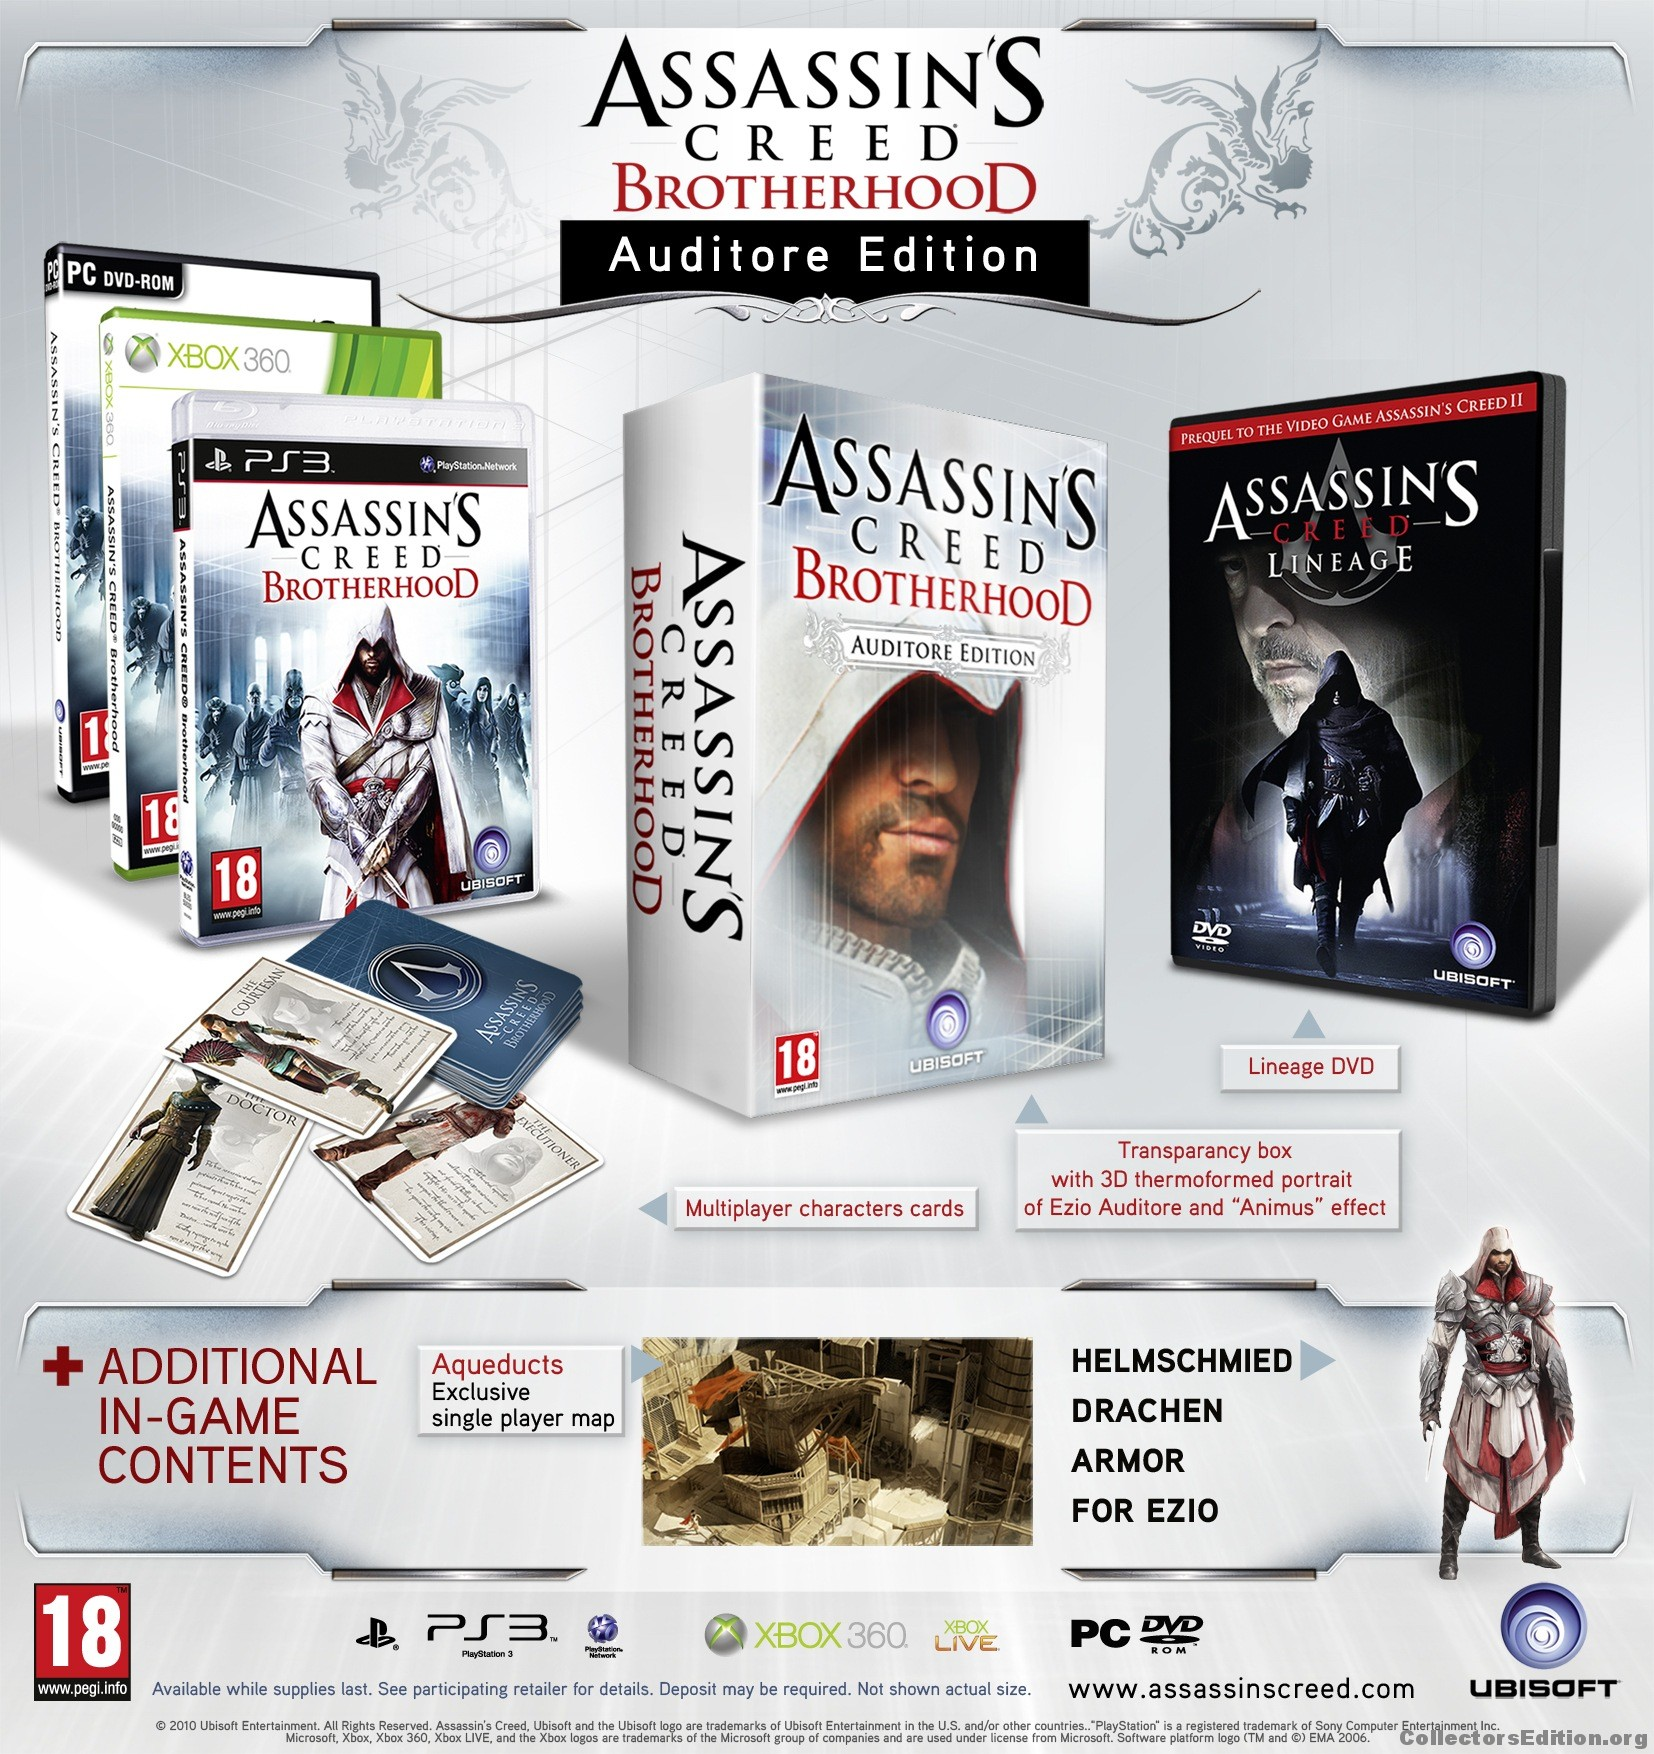 Collectorsedition Org Assassin S Creed Brotherhood Auditore Edition 360 Pal